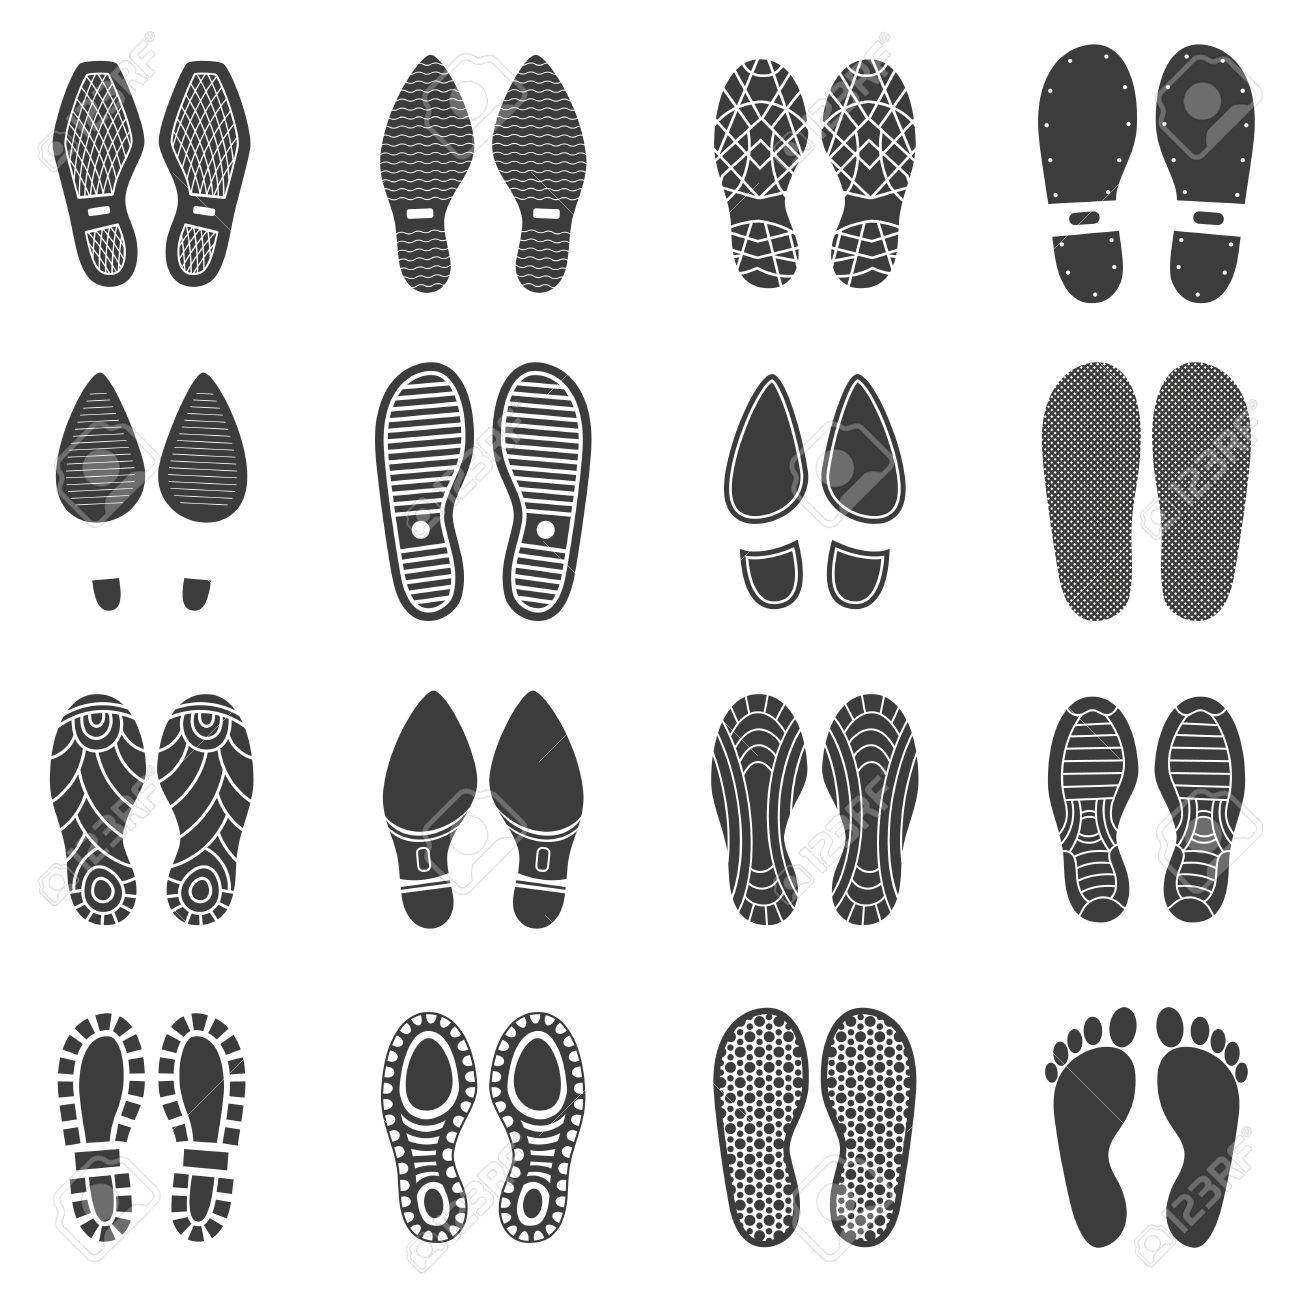 Monochrome icons set of parallel shoes footprint with white background vector illustration - 59676182